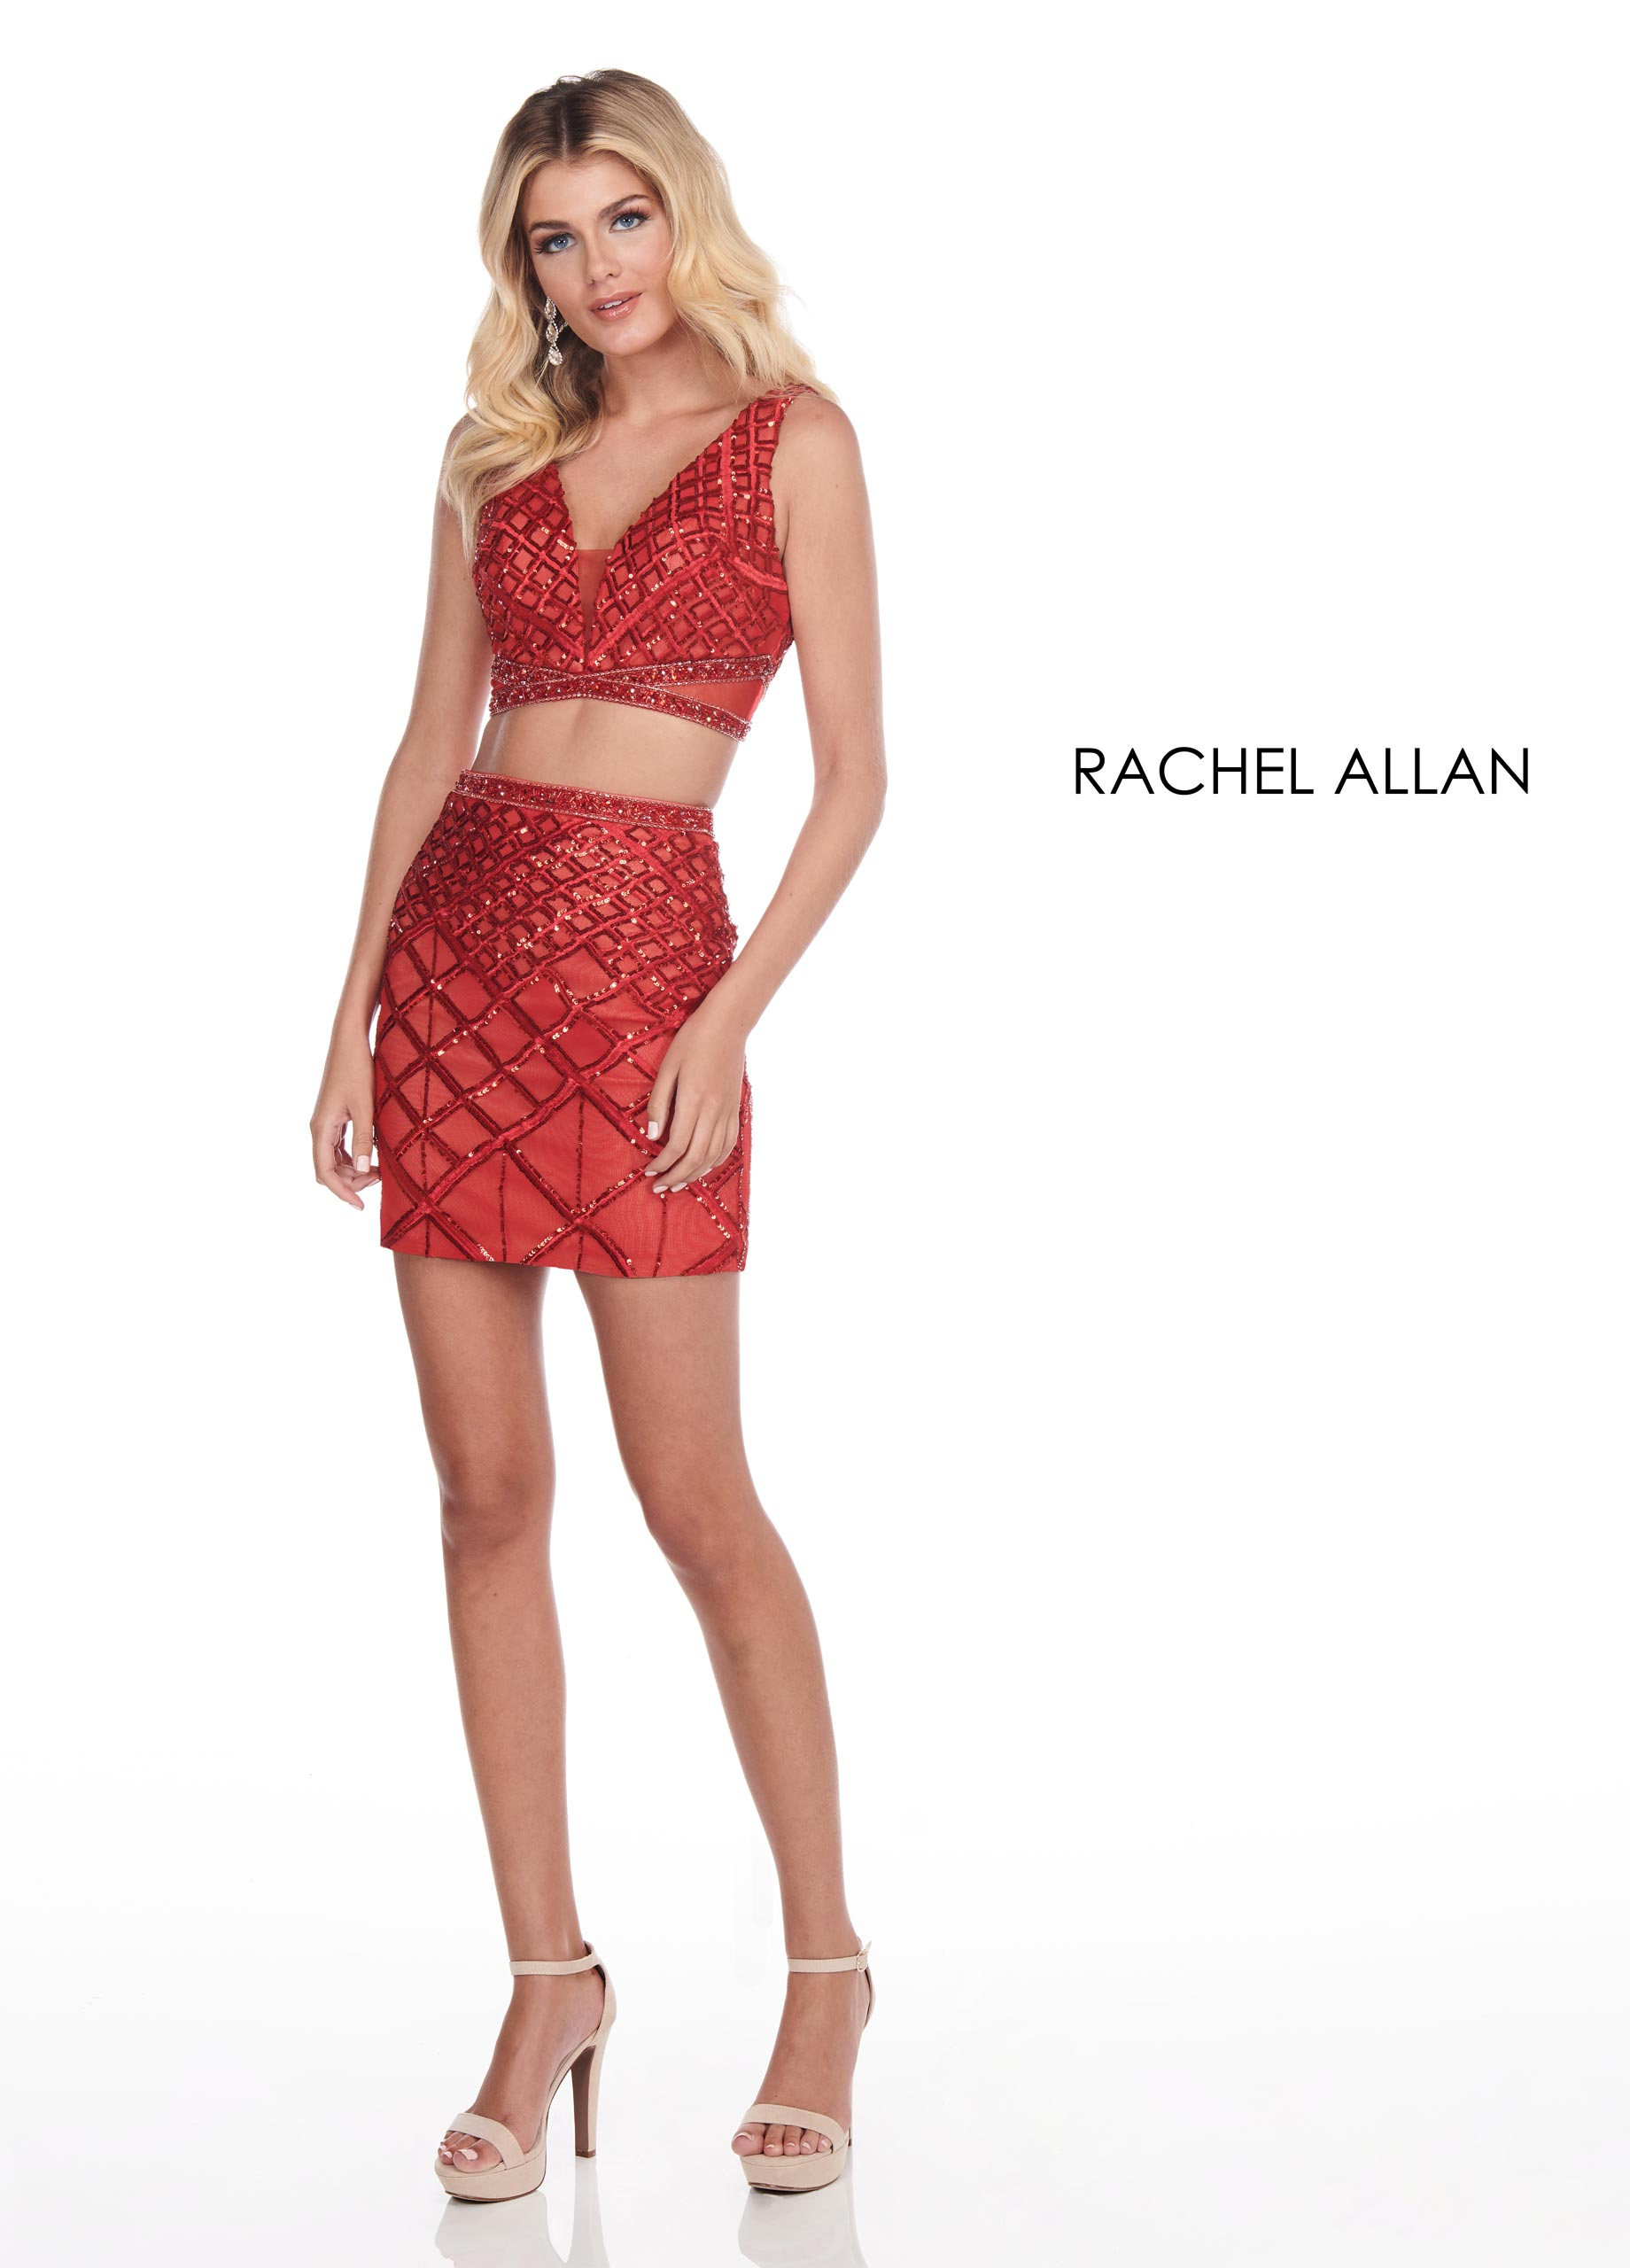 V-Neck Two-Piece Homecoming Dresses in Red Color